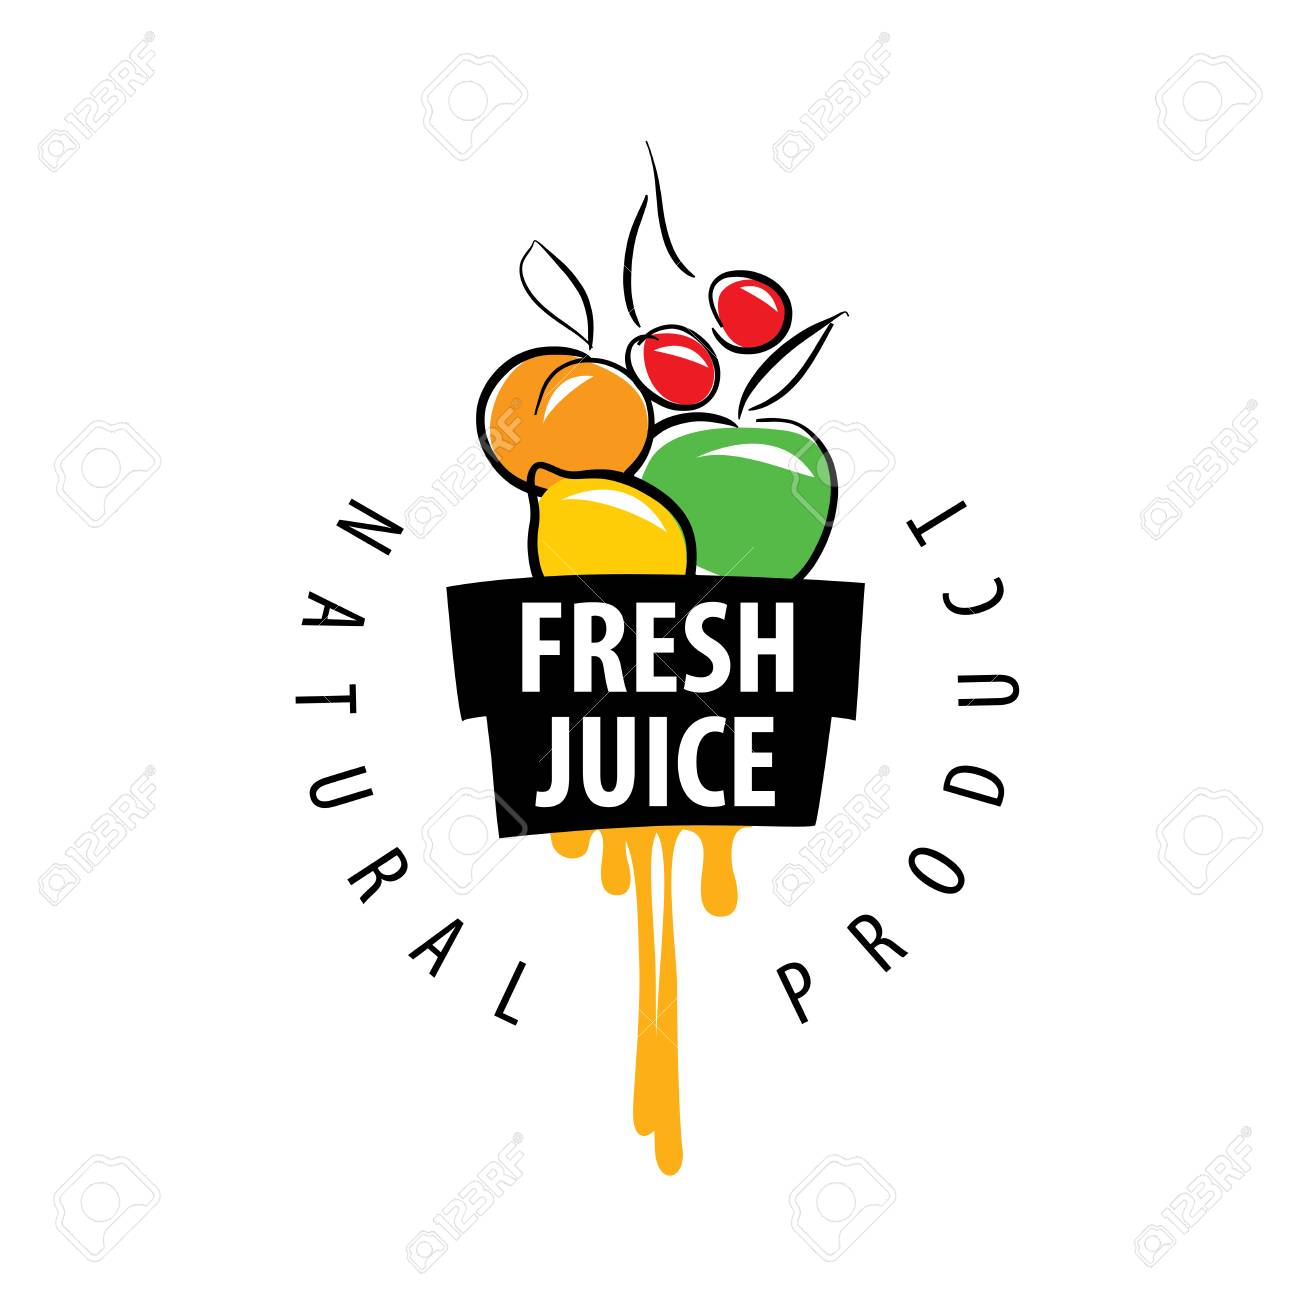 logo design template fresh juice vector illustration of icon royalty free cliparts vectors and stock illustration image 67425612 logo design template fresh juice vector illustration of icon